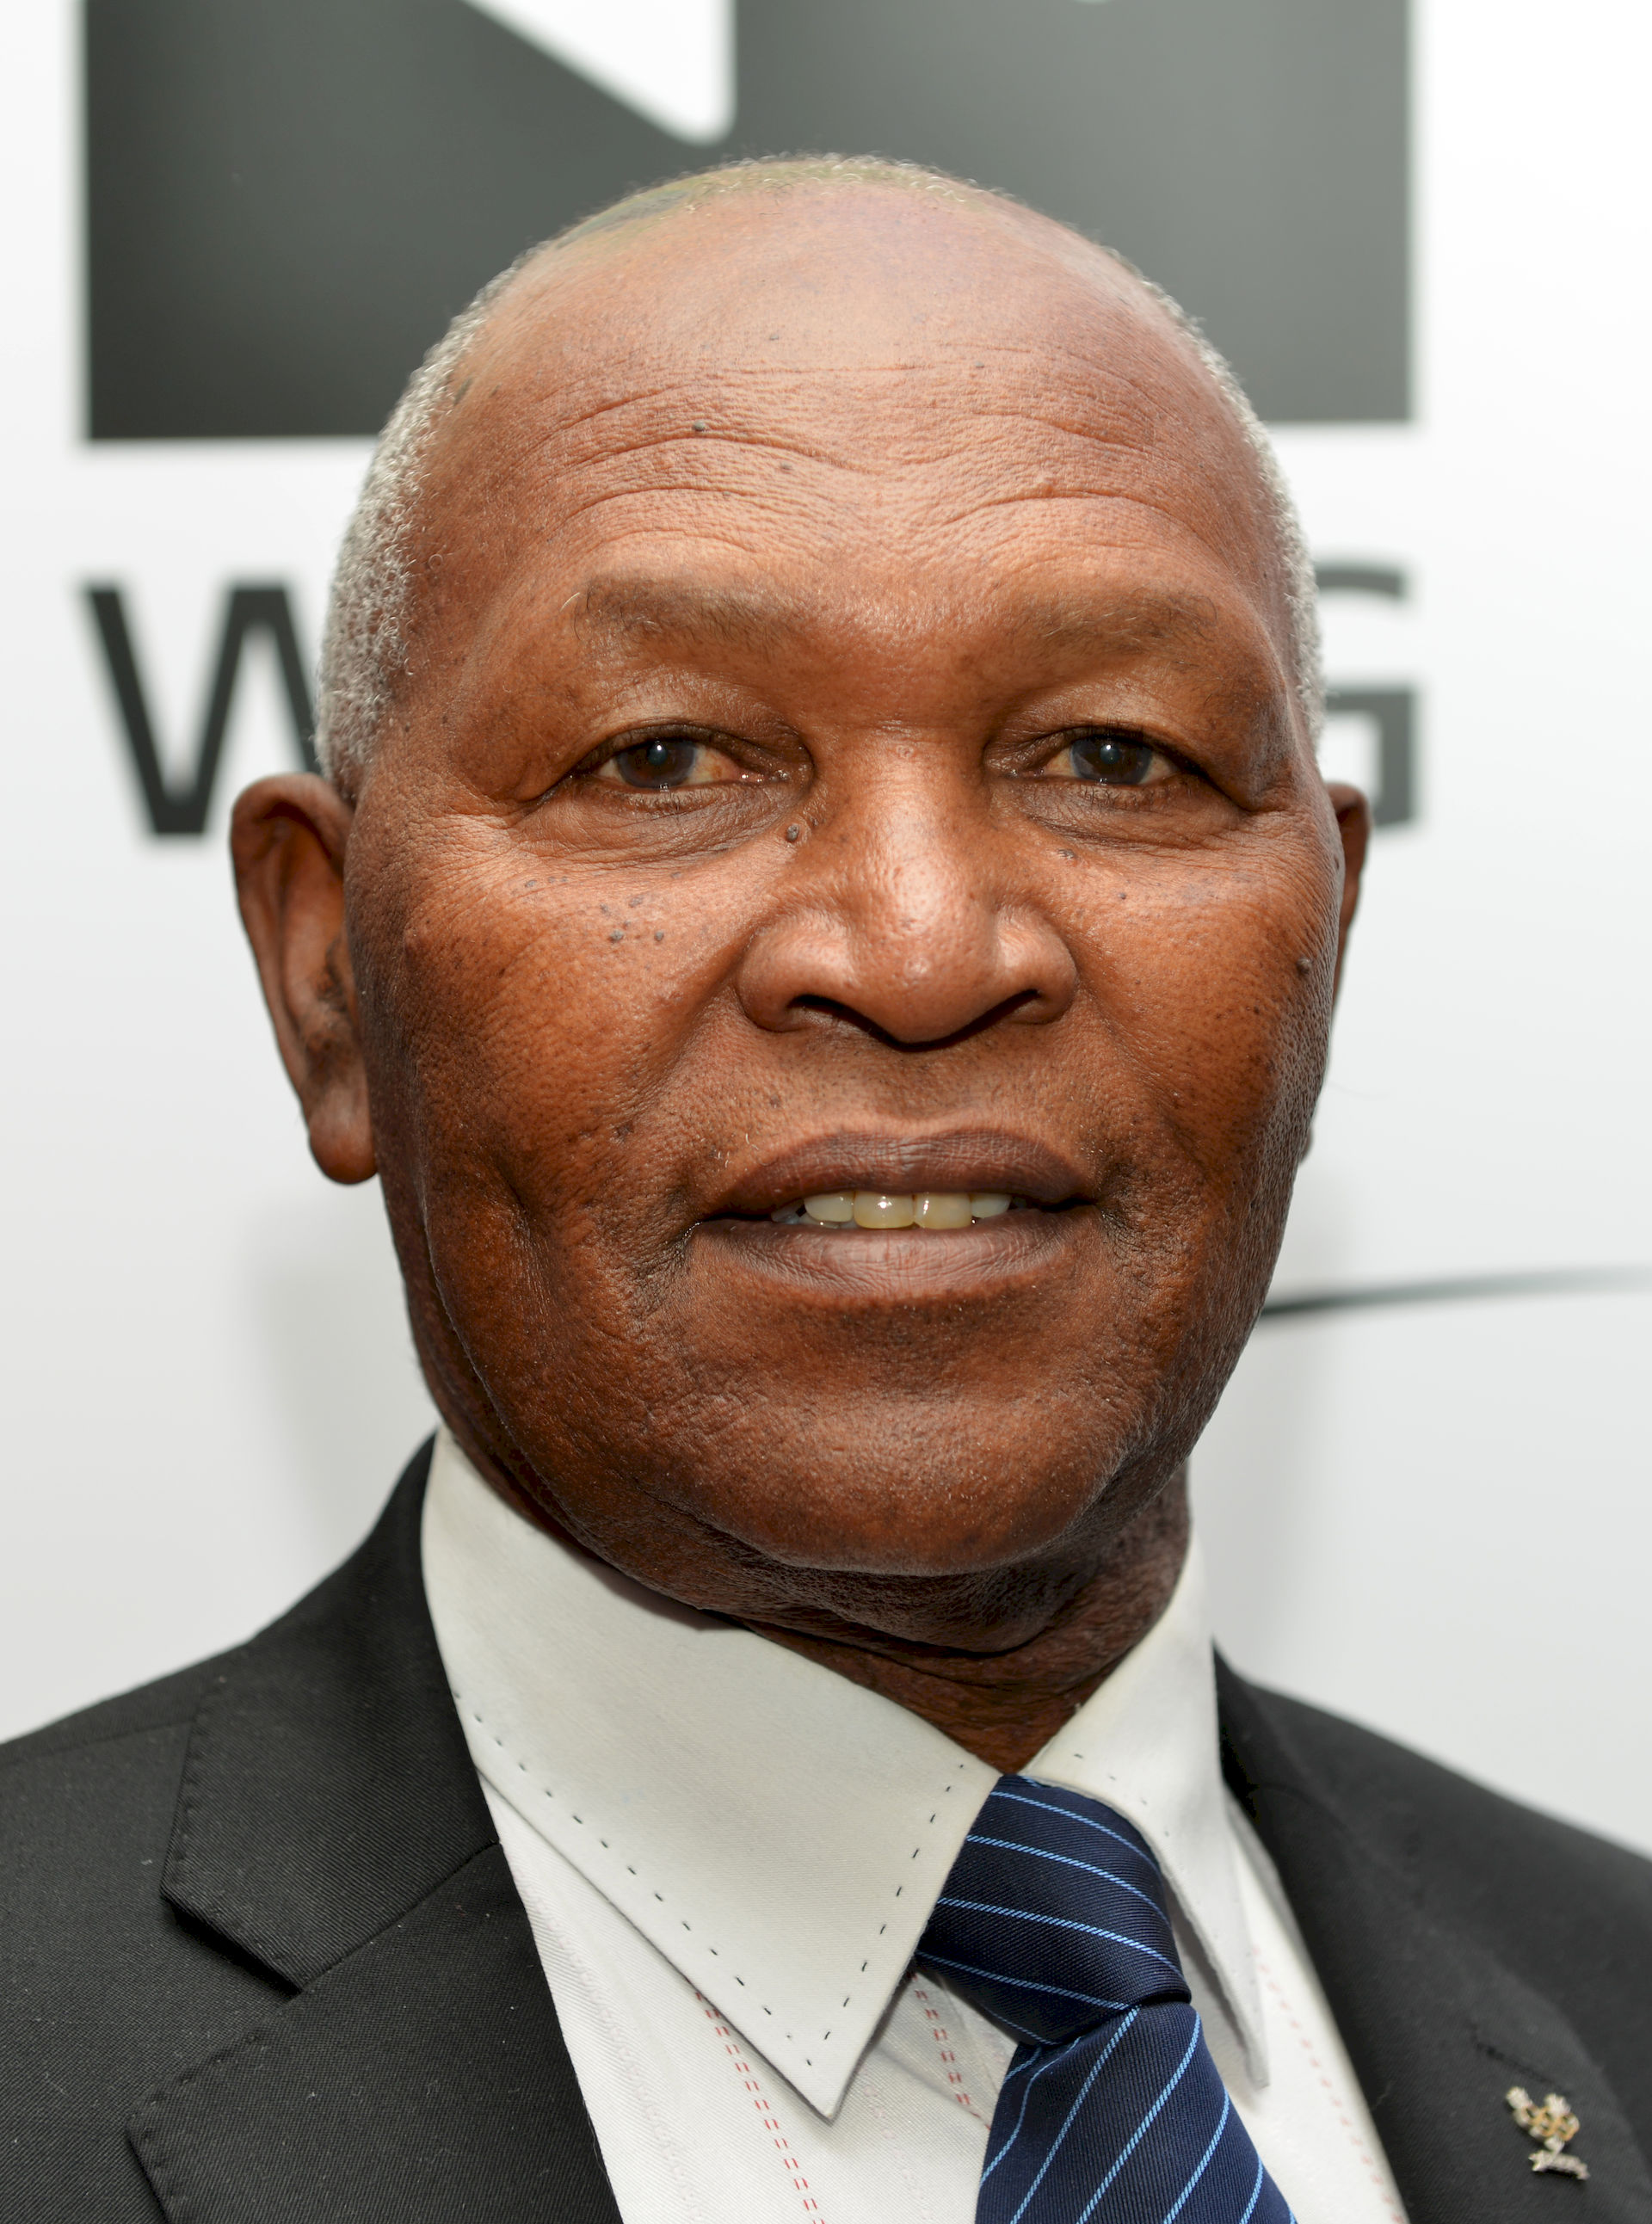 Photo of Kipchoge Keino: Chairman of the Kenyan Olympic Committee